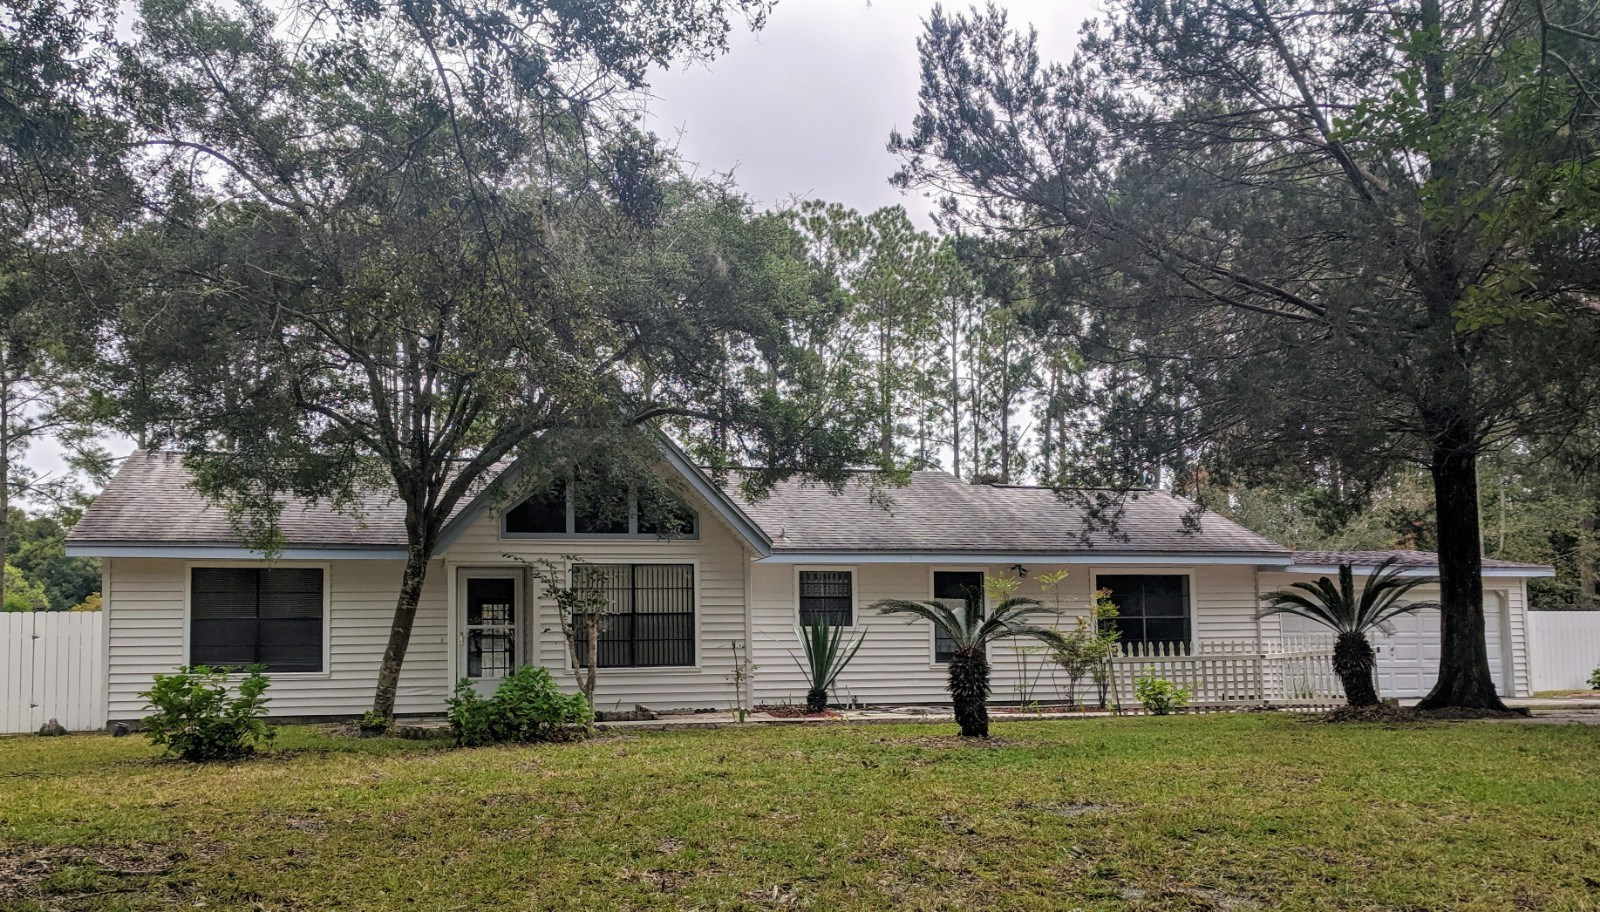 3 bedroom family home on 1 acre in Gainesville Florida